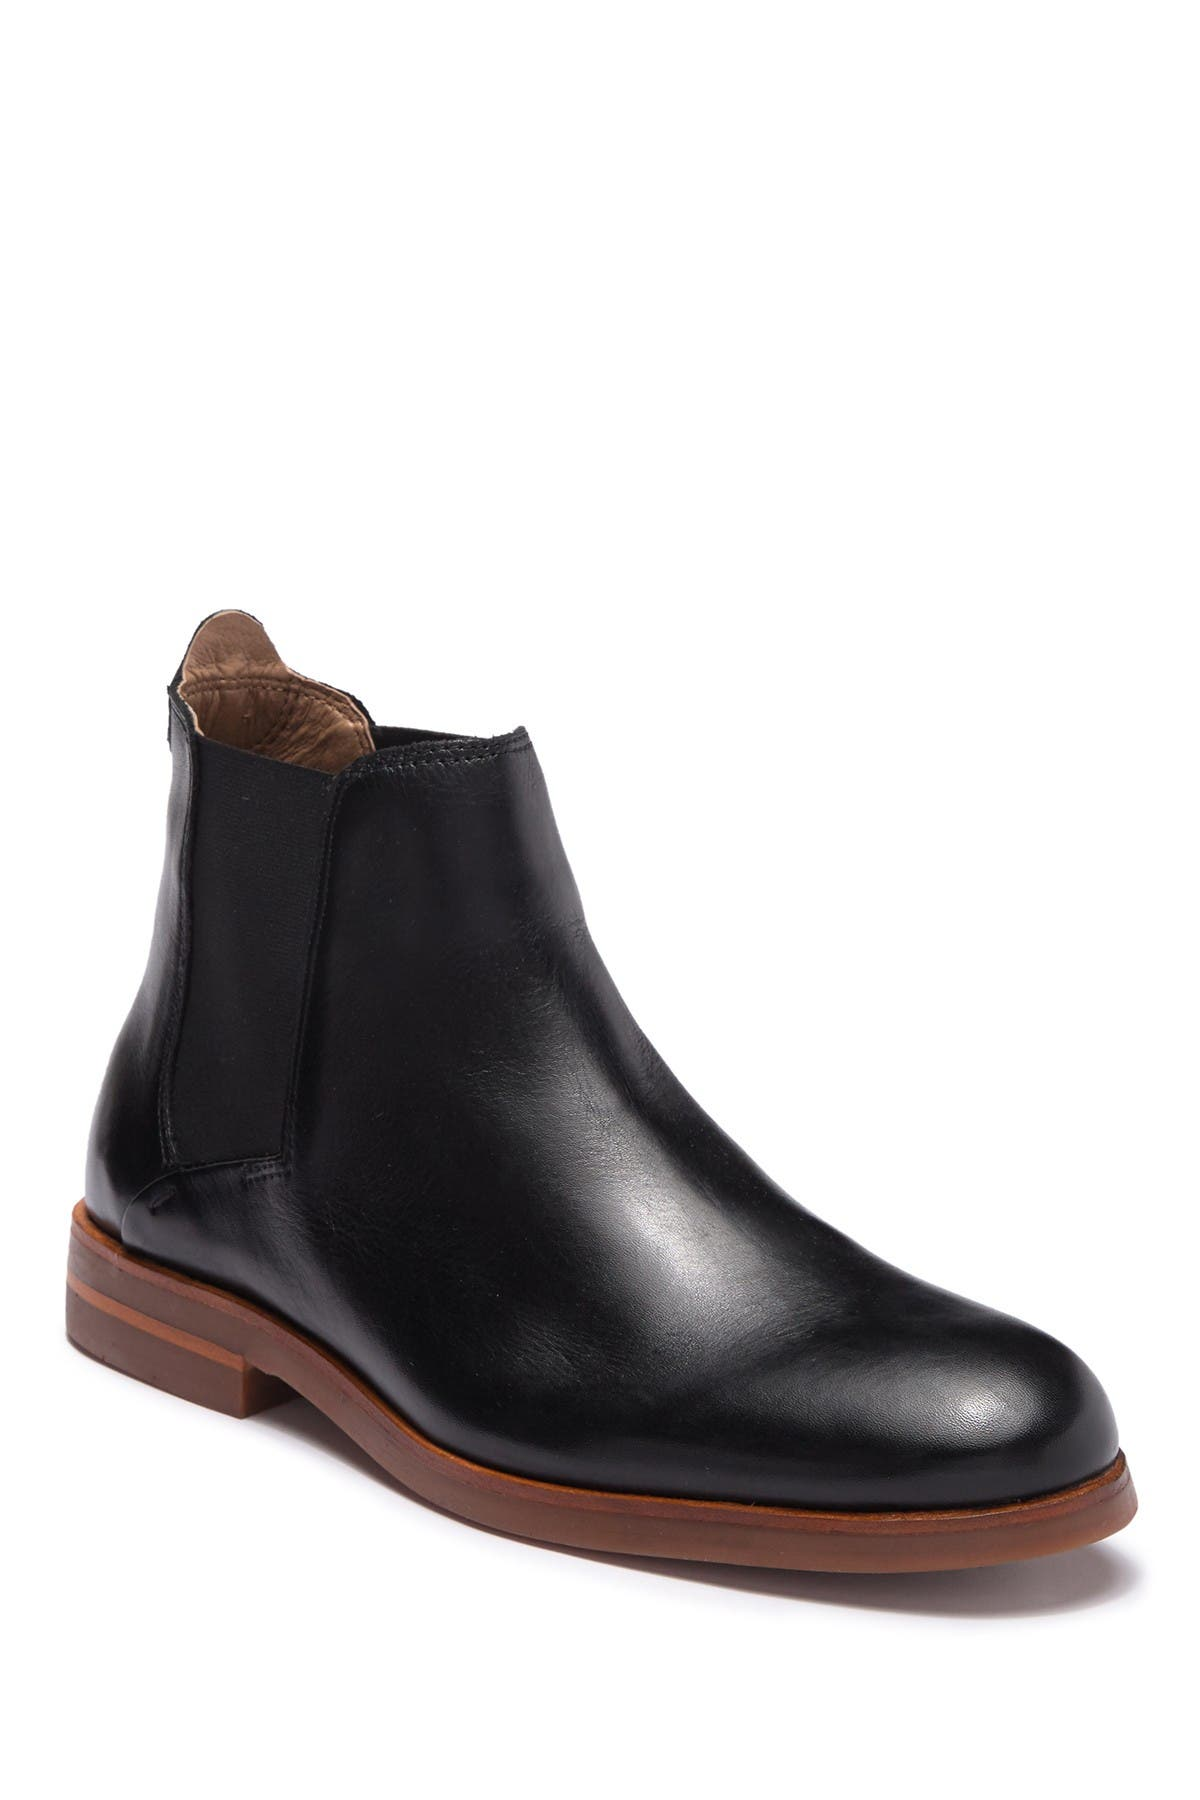 Image of H By Hudson Tonti Leather Chelsea Boot